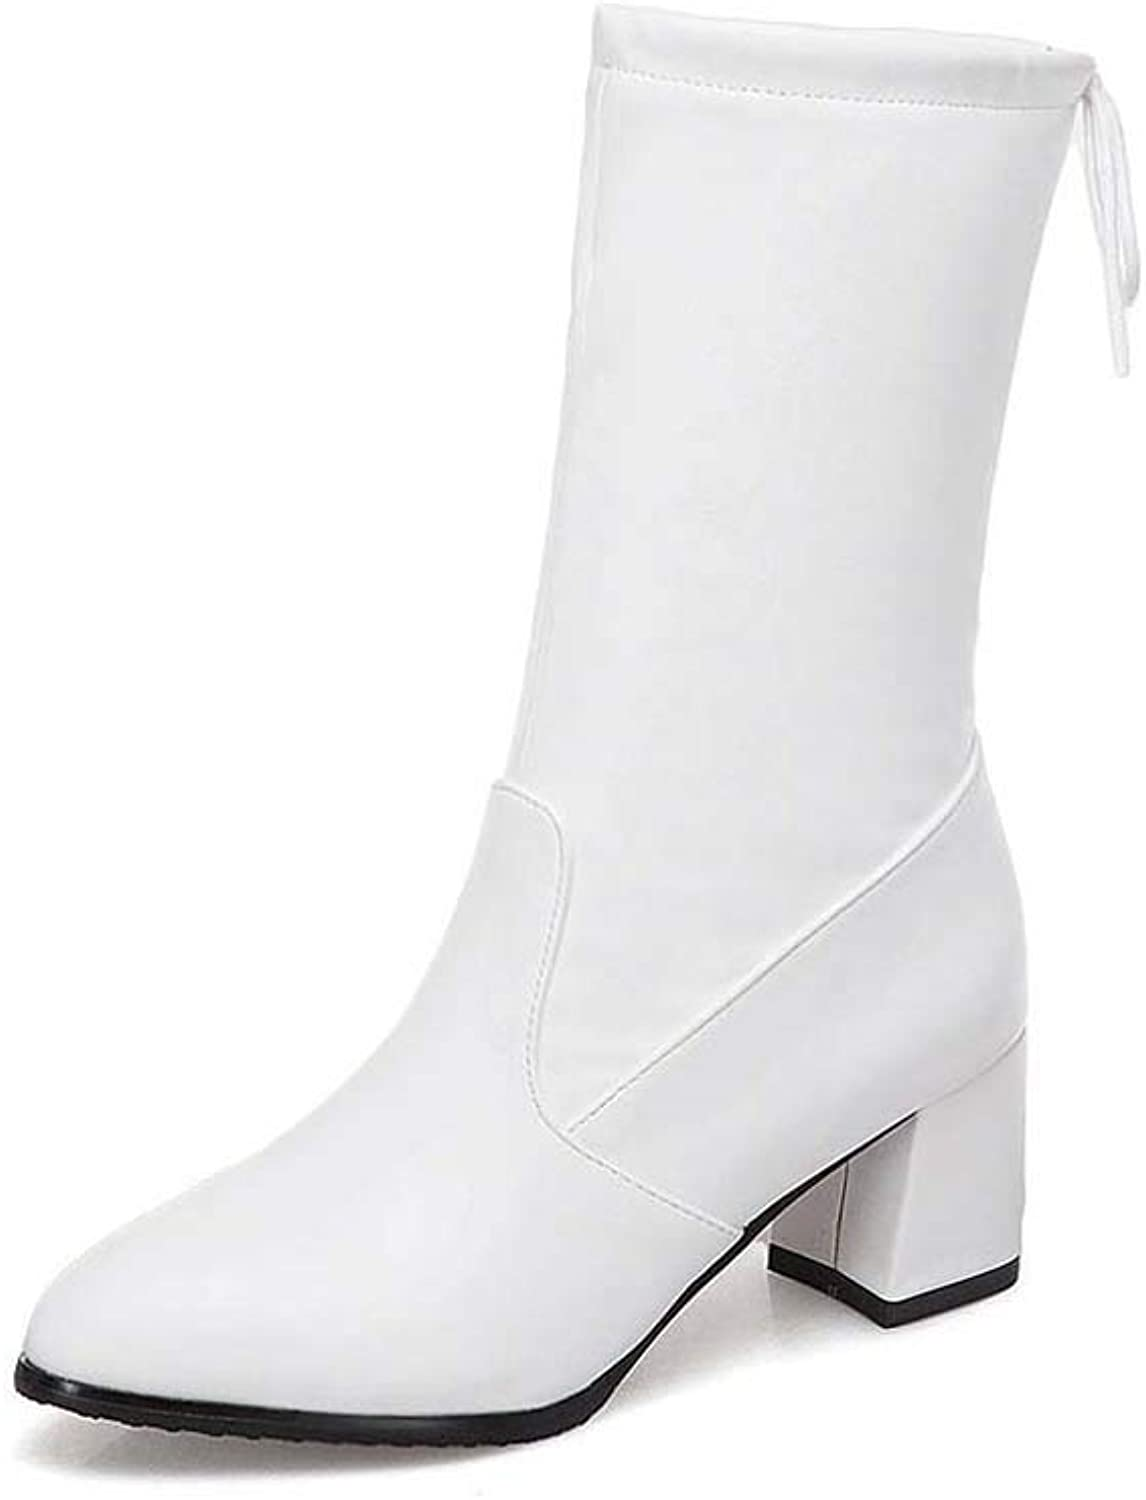 Women's Boots Sleek Minimalist Thick with High Heel 34-43 Large Size in The Tube Set Foot Women's Boots